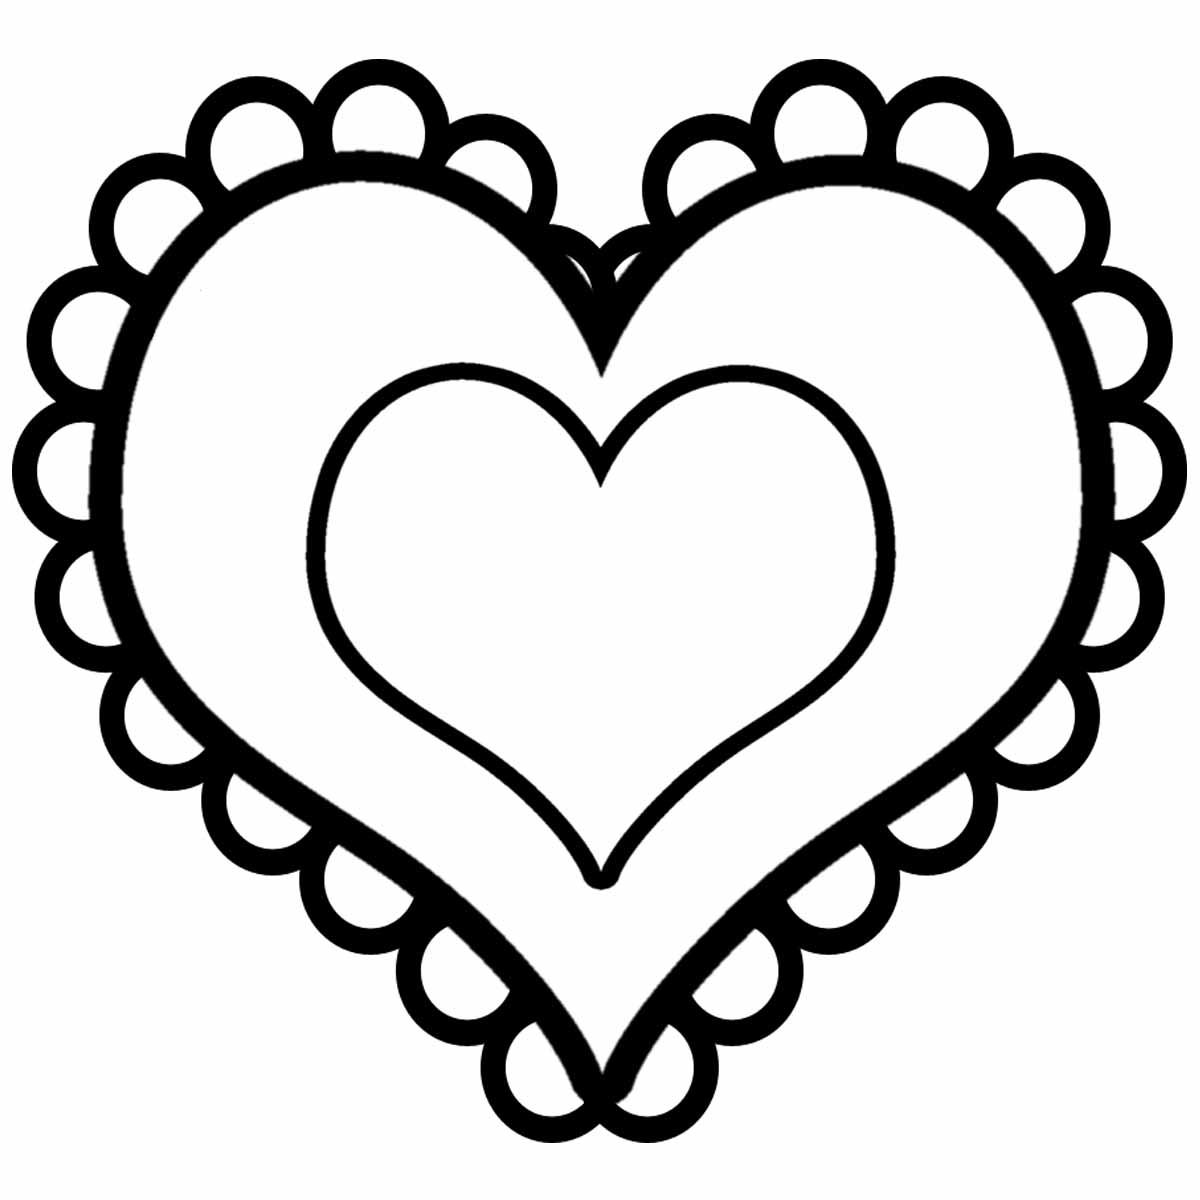 graphic regarding Heart Coloring Pages Printable referred to as Cost-free Printable Center Coloring Web pages For Small children